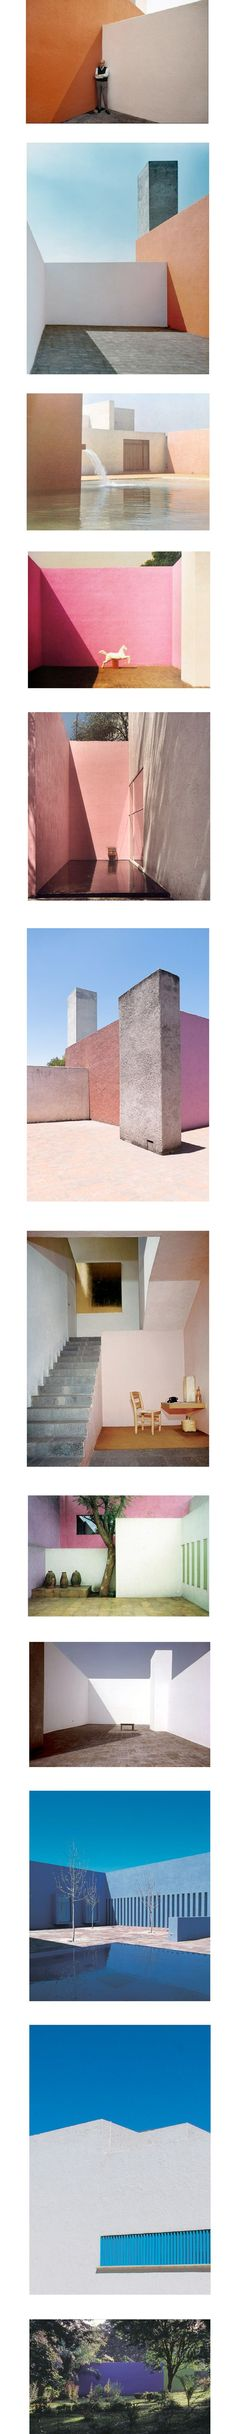 Luis Barragan architecte mexicain 1902 1988 like Alice in Wonderland Architecture Design, Landscape Architecture, Minimalist Architecture, Monumental Architecture, Architecture Diagrams, Architecture Interiors, Architecture Portfolio, Casa Patio, Interior And Exterior